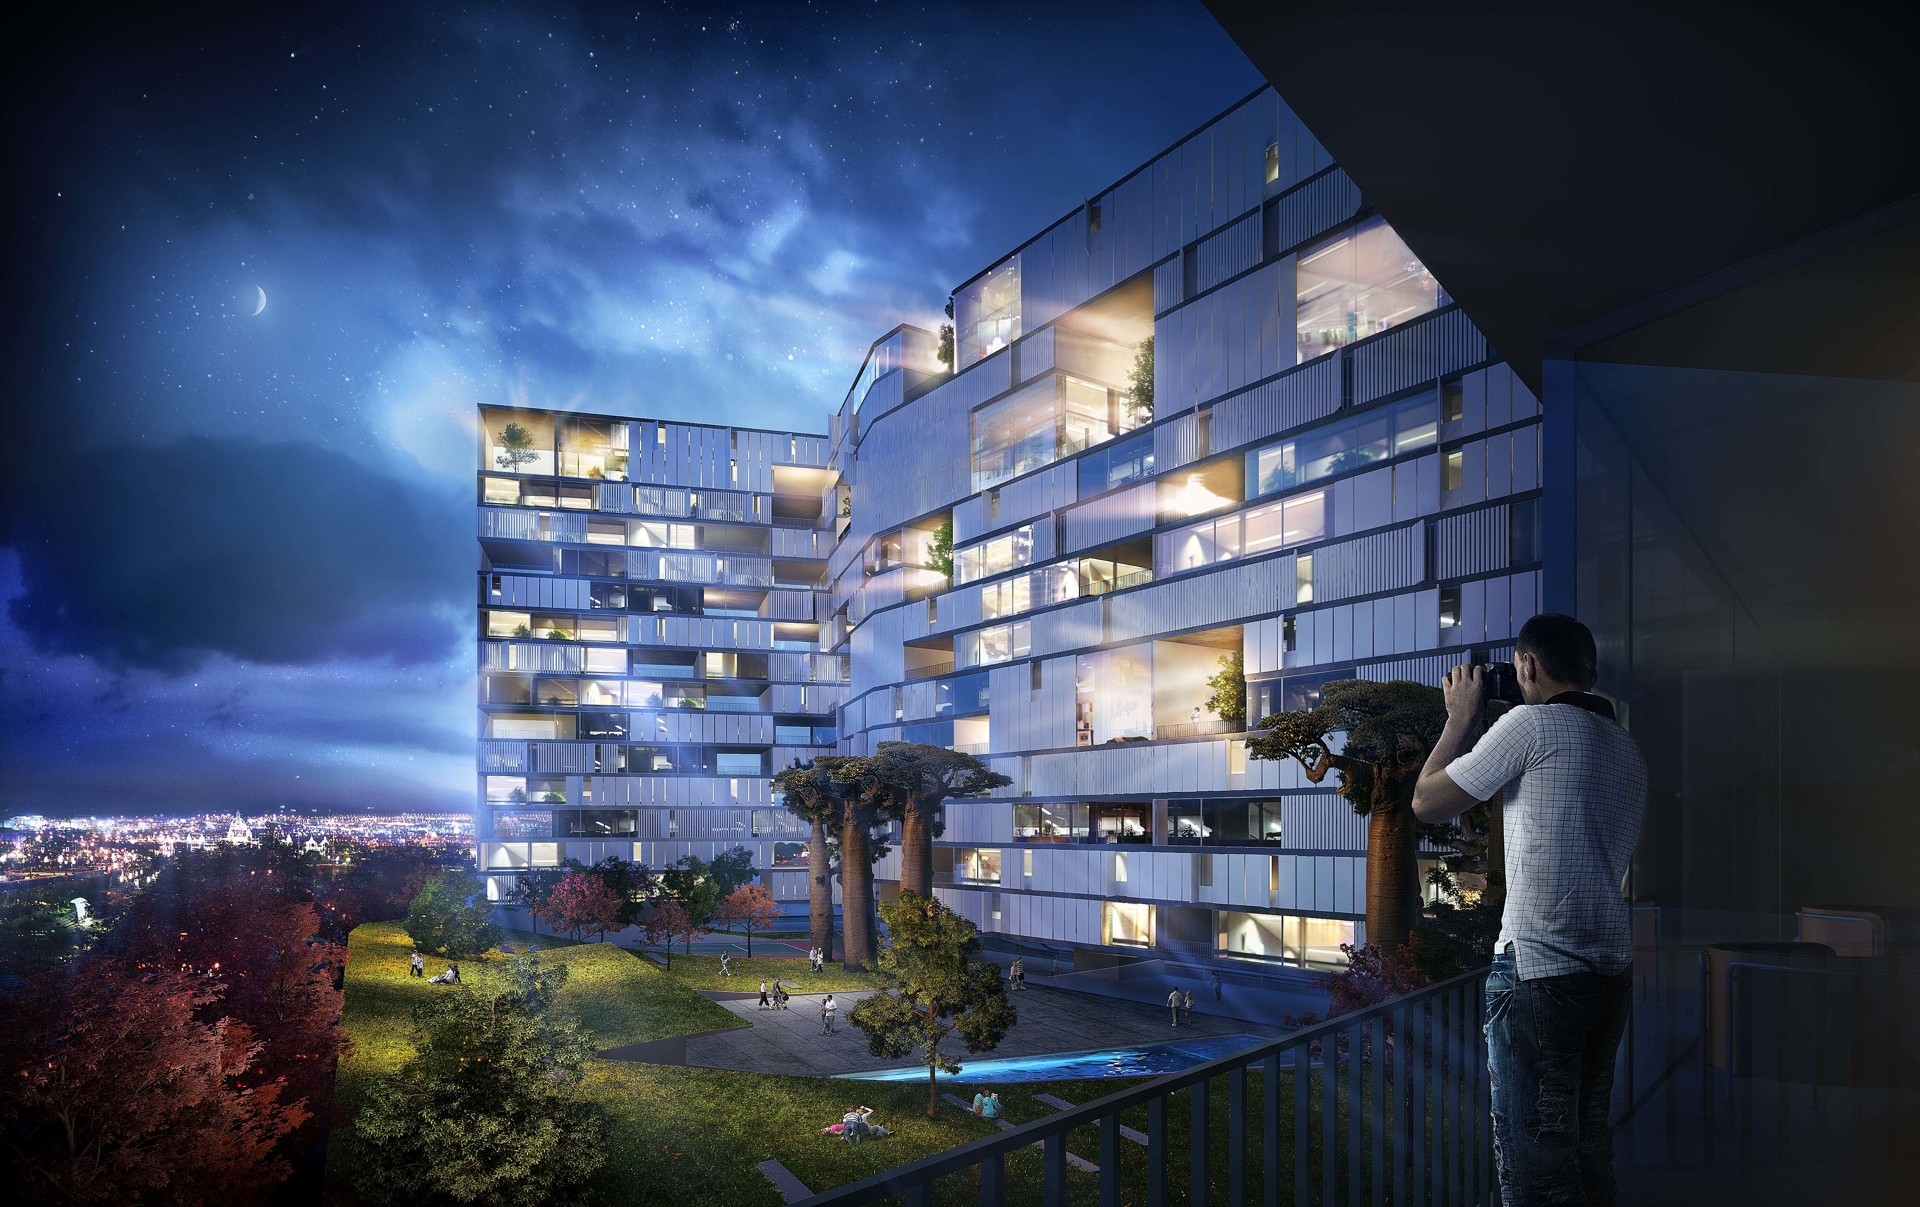 Villas In The Sky The Proposed Glover 57 Apartments In